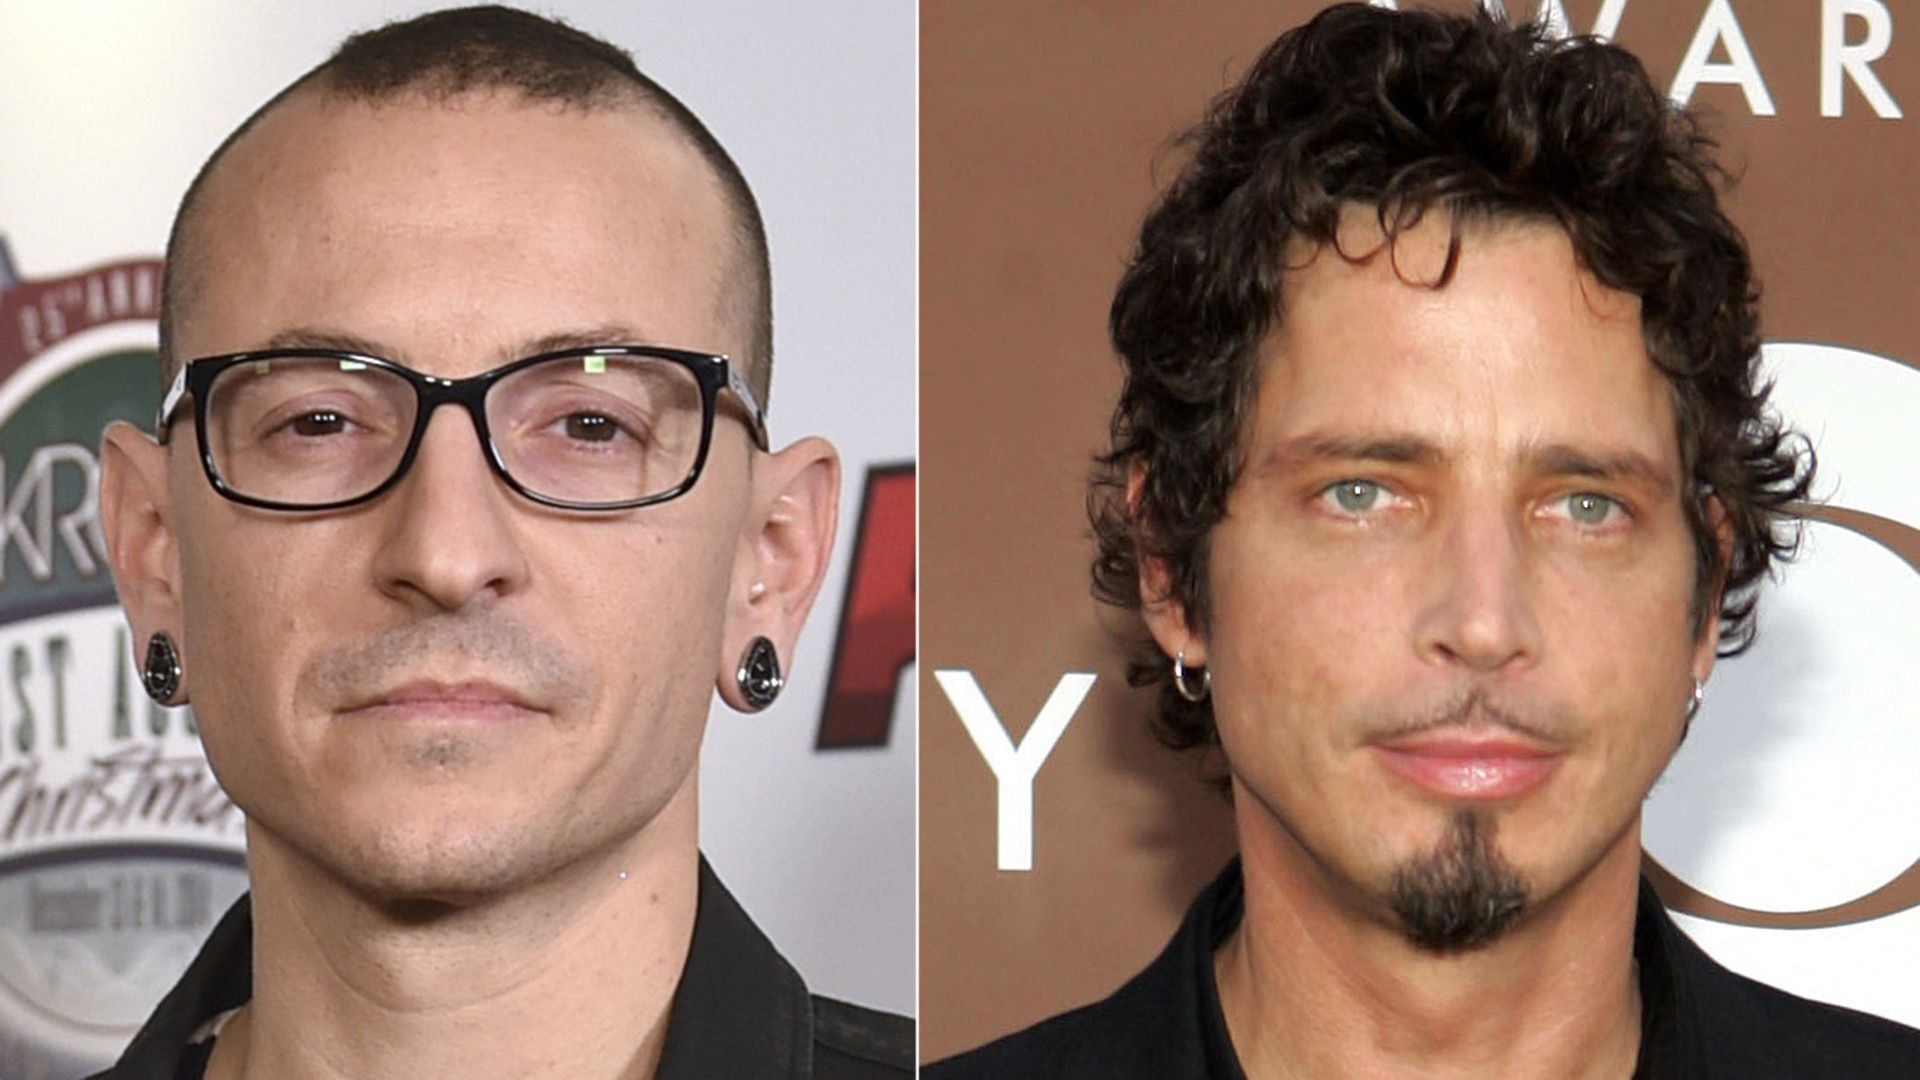 Chester Bennington's death mirrors that of close friend Chris Cornell - Chicago Tribune